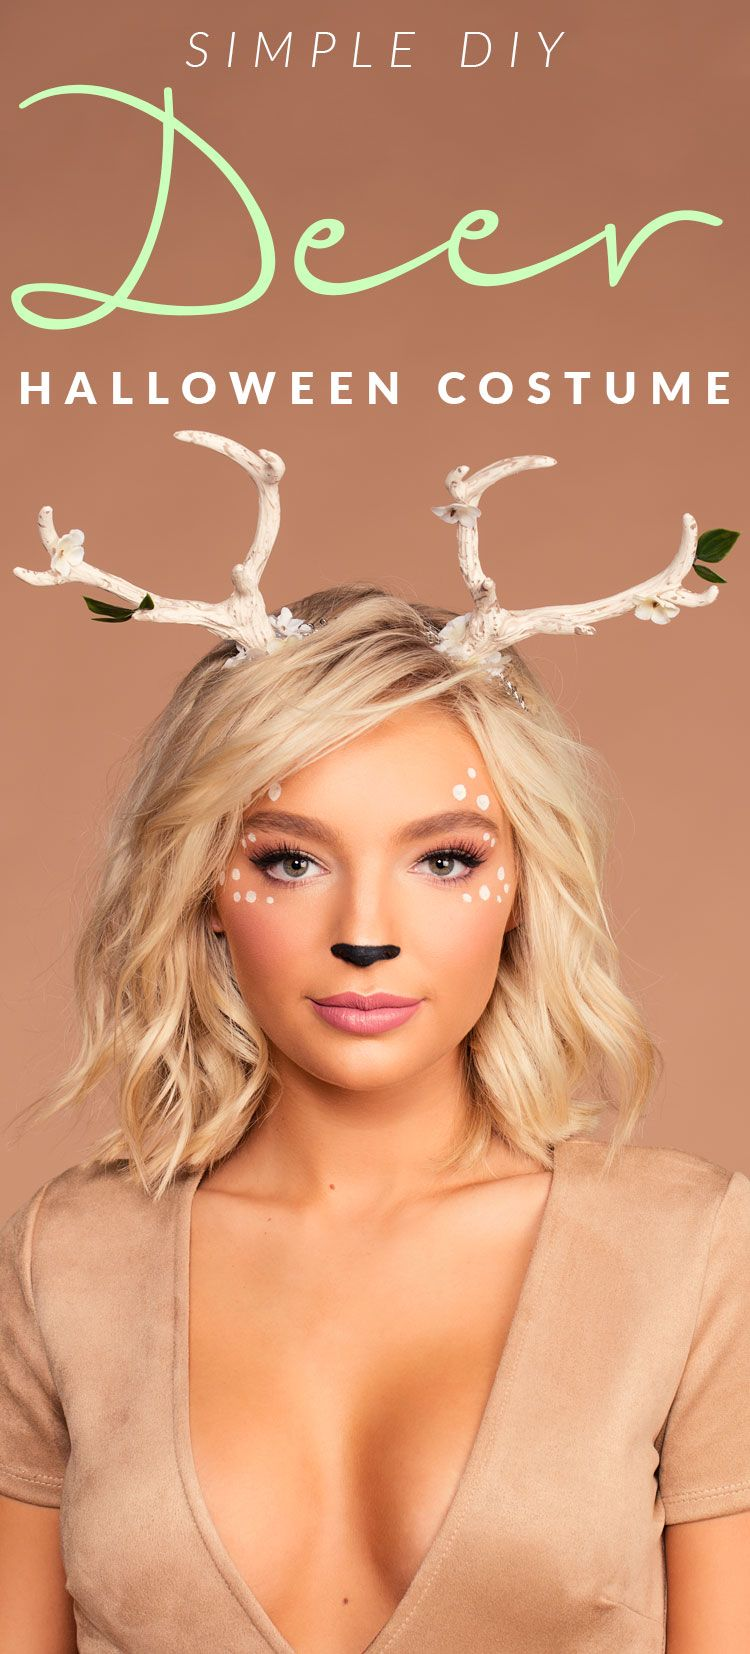 Simple DIY Deer Halloween Costume & Makeup! Deer